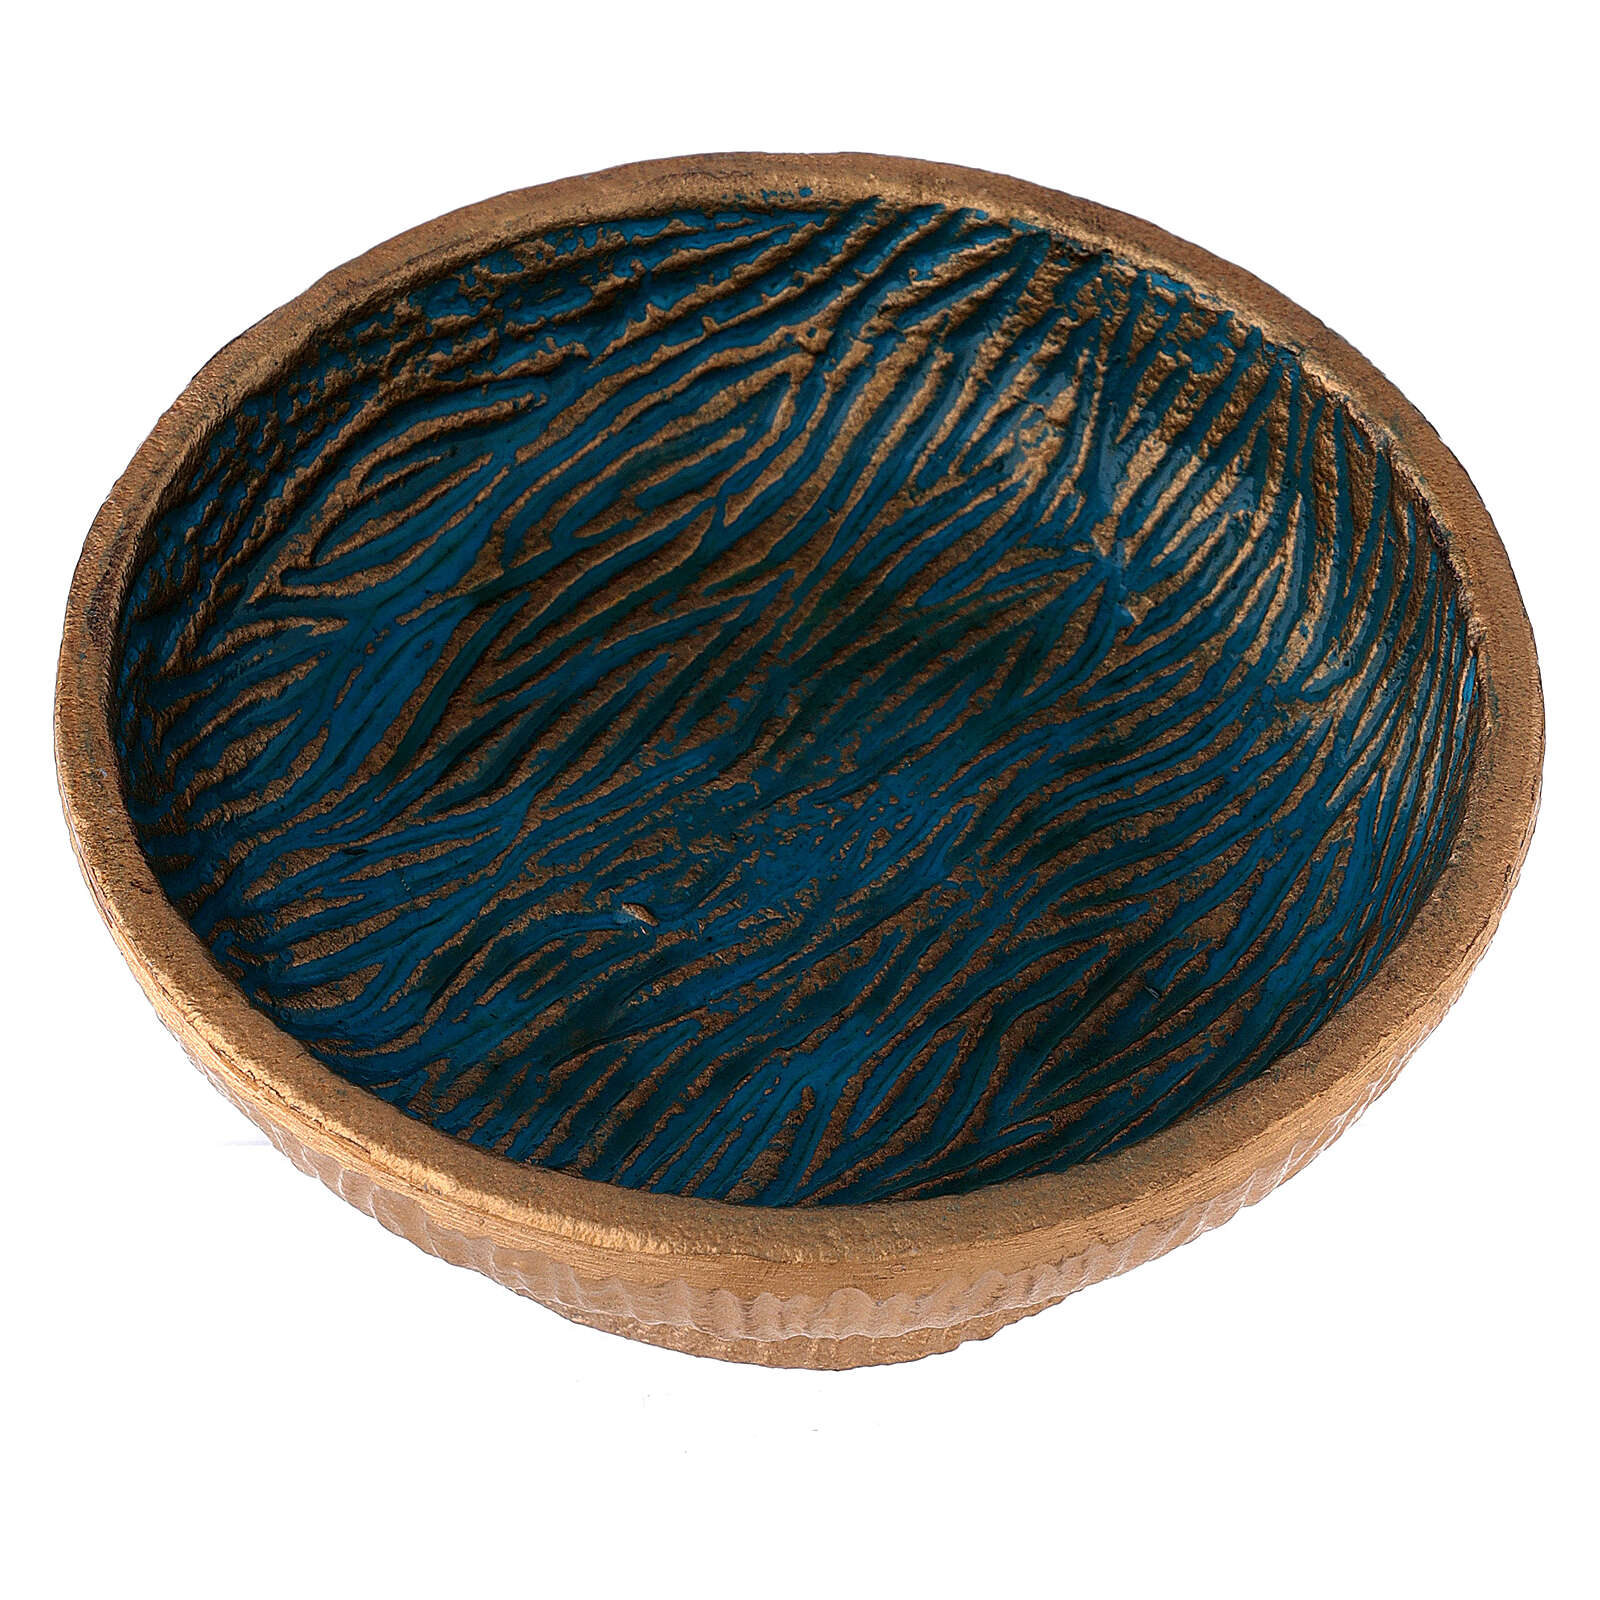 Incense bowl 5 1/2 in gold and light blue aluminium 3